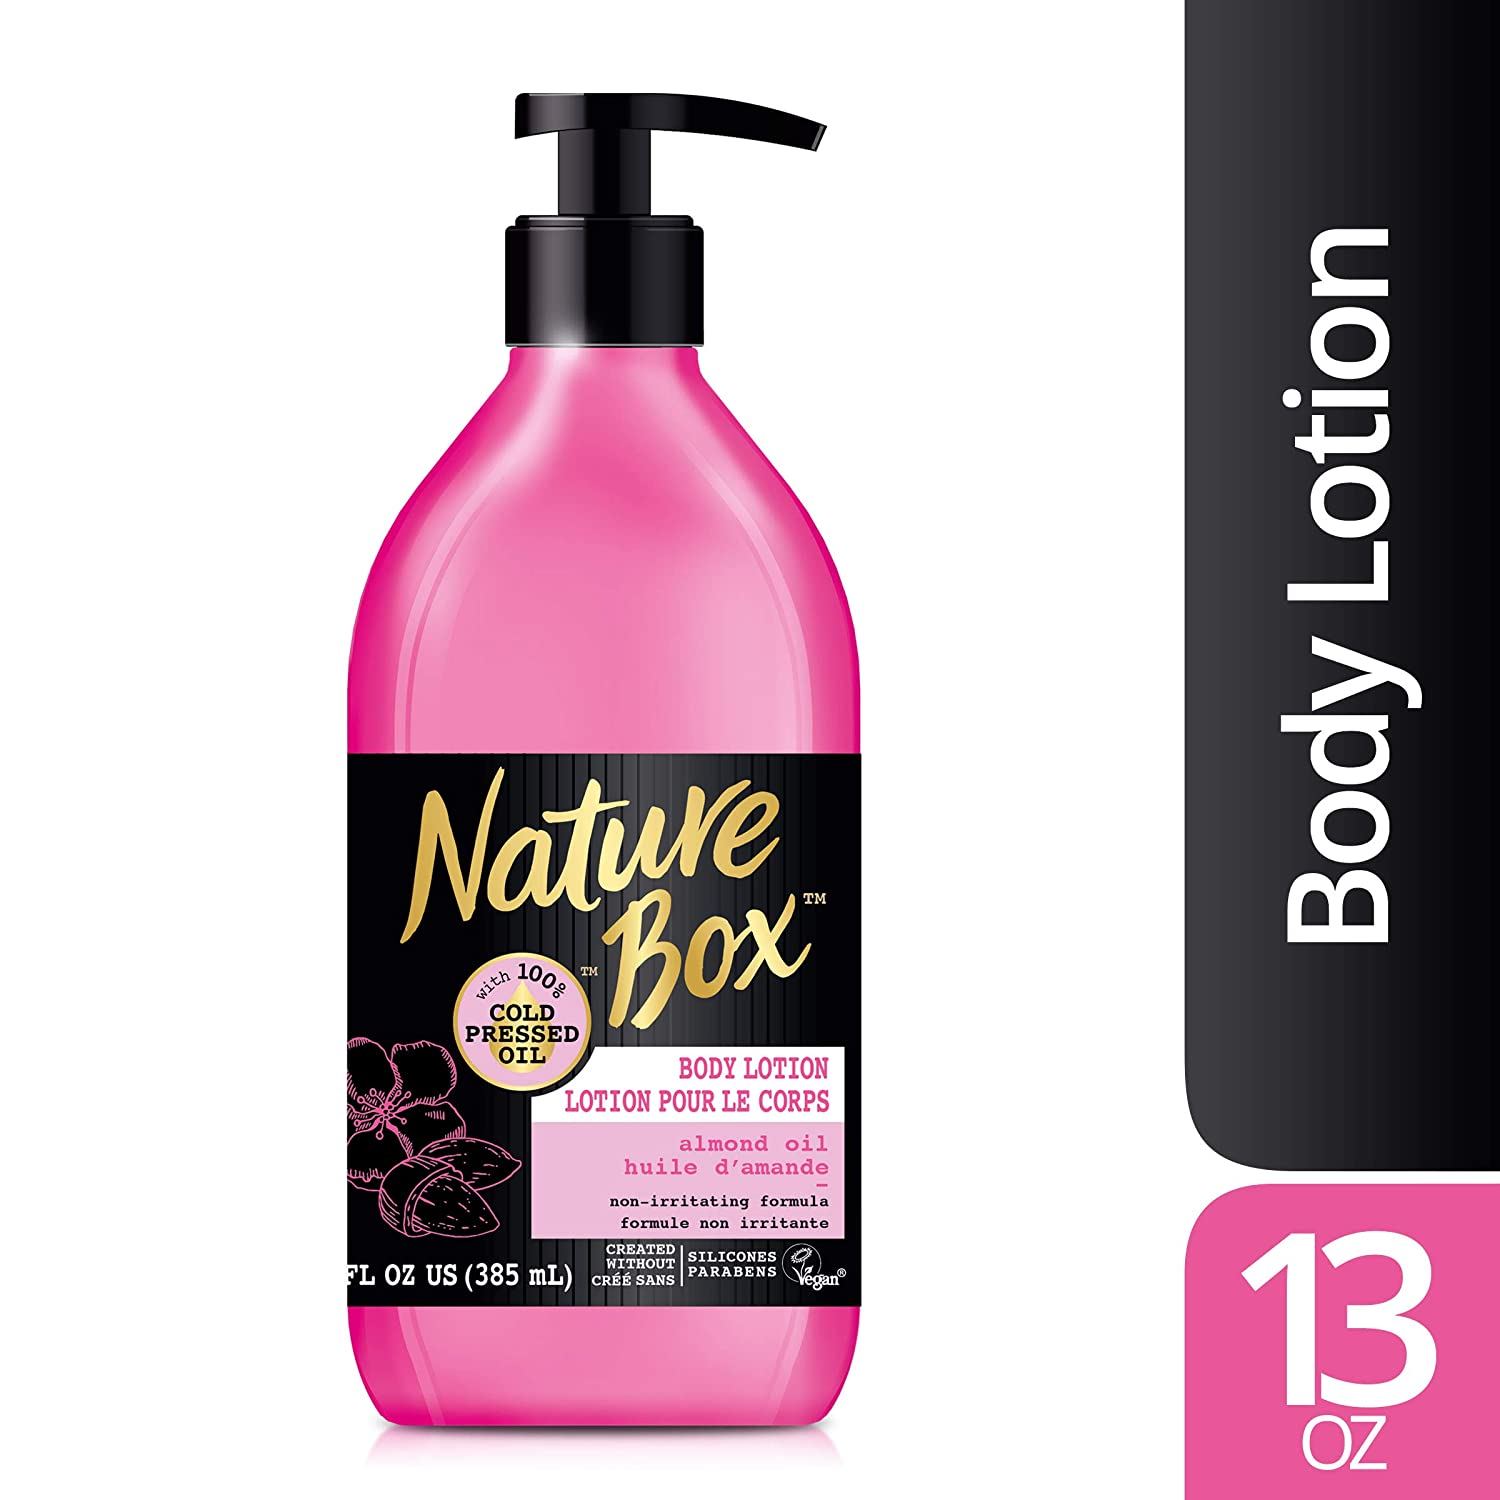 Nature Box Sensitive Skin Body Lotion - with 100% Cold Pressed Almond Oil, 13 Ounce